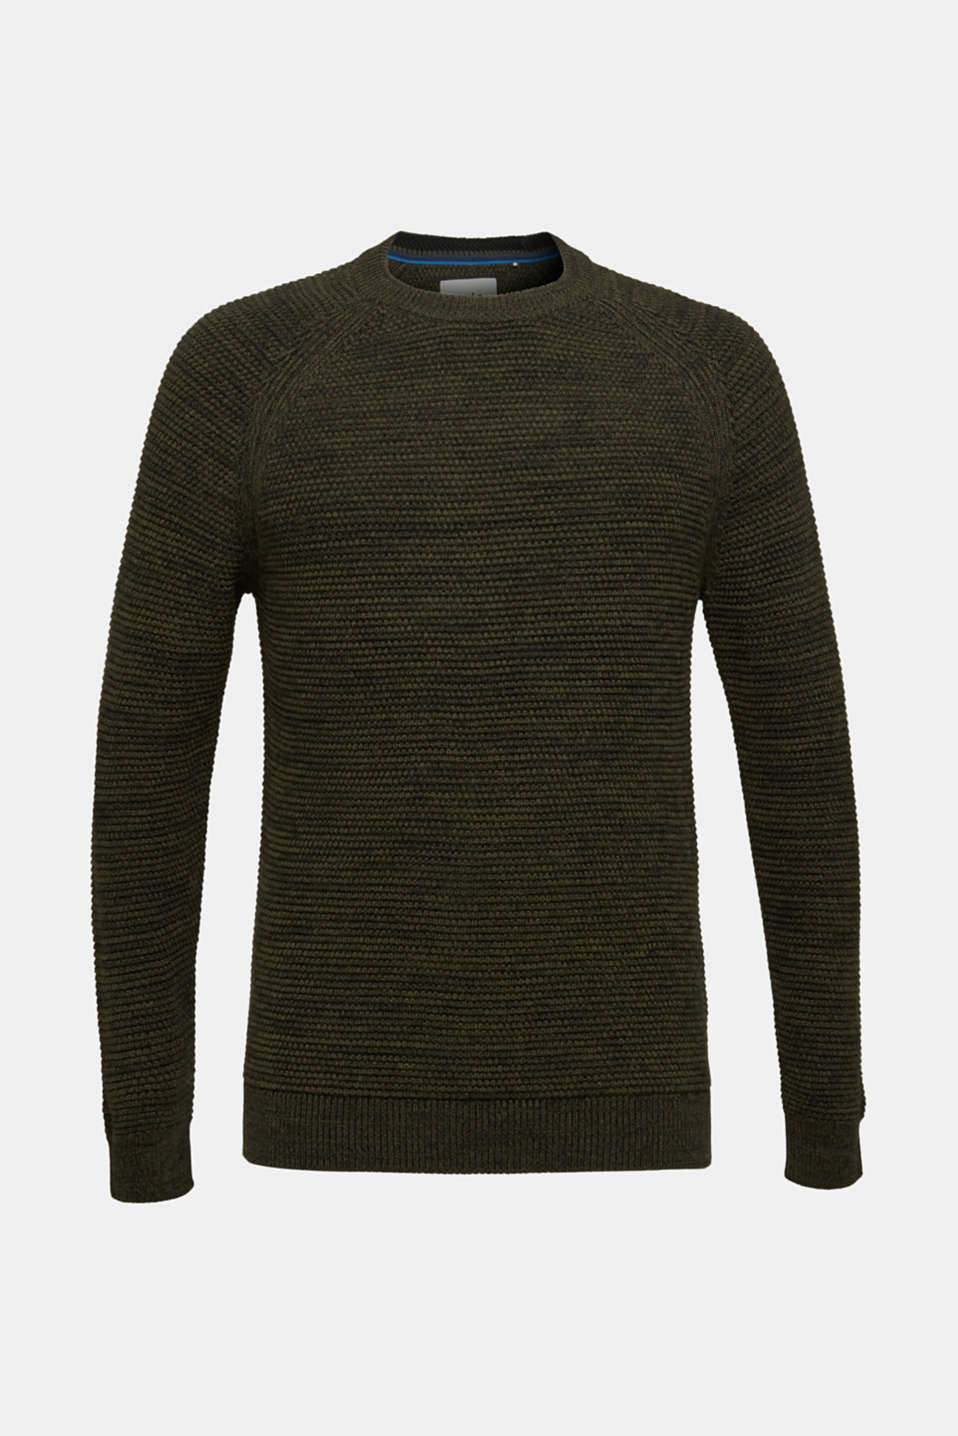 Textured jumper made of 100% cotton, KHAKI GREEN 5, detail image number 6